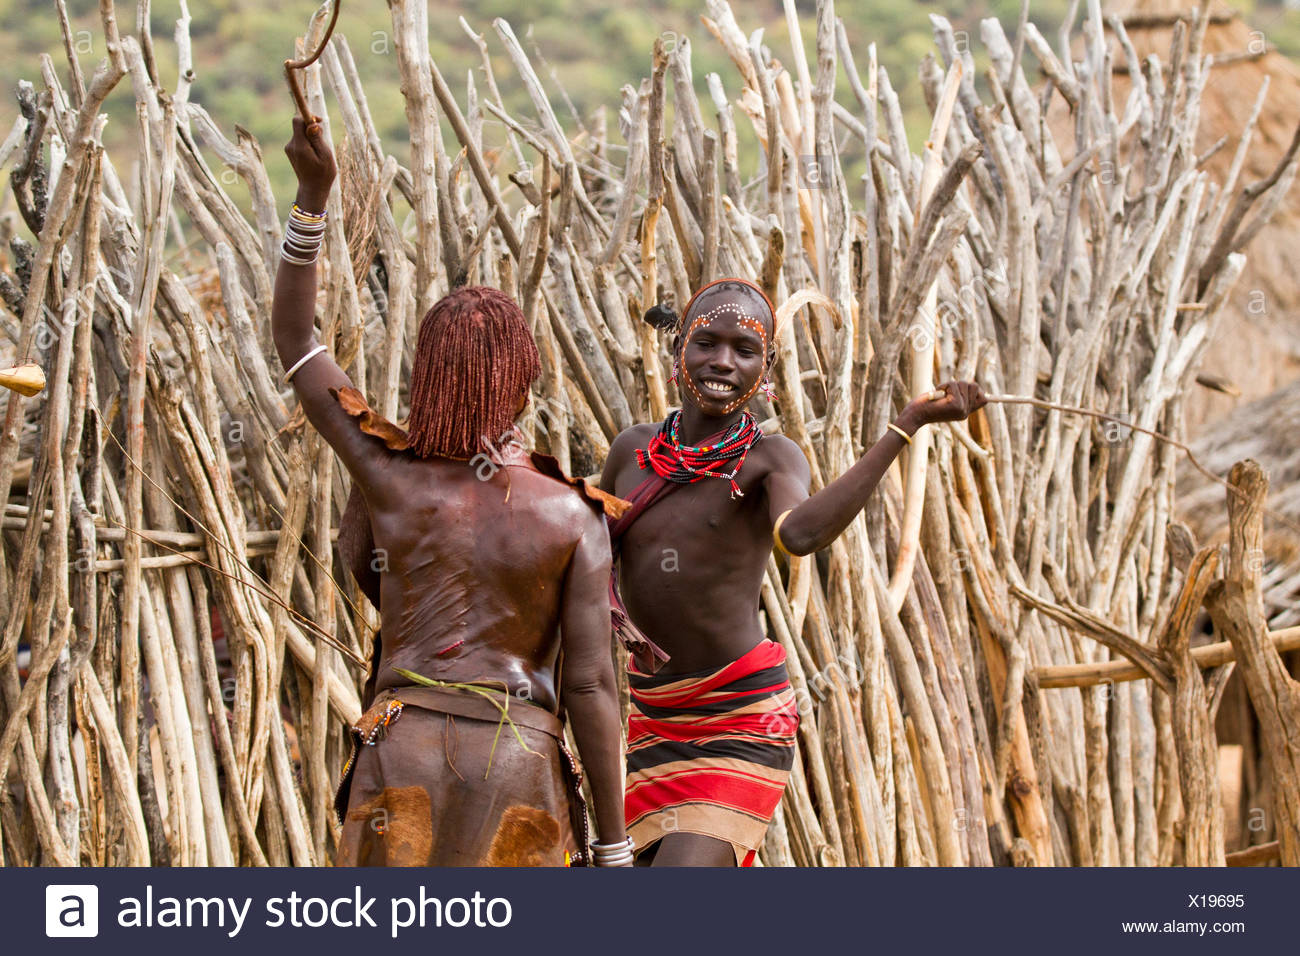 Man with reed whip ready to flog a female member at the Hamar tribe's  'Jumping of the Bull' ceremony. Omo Valley Ethiopia - Stock Image